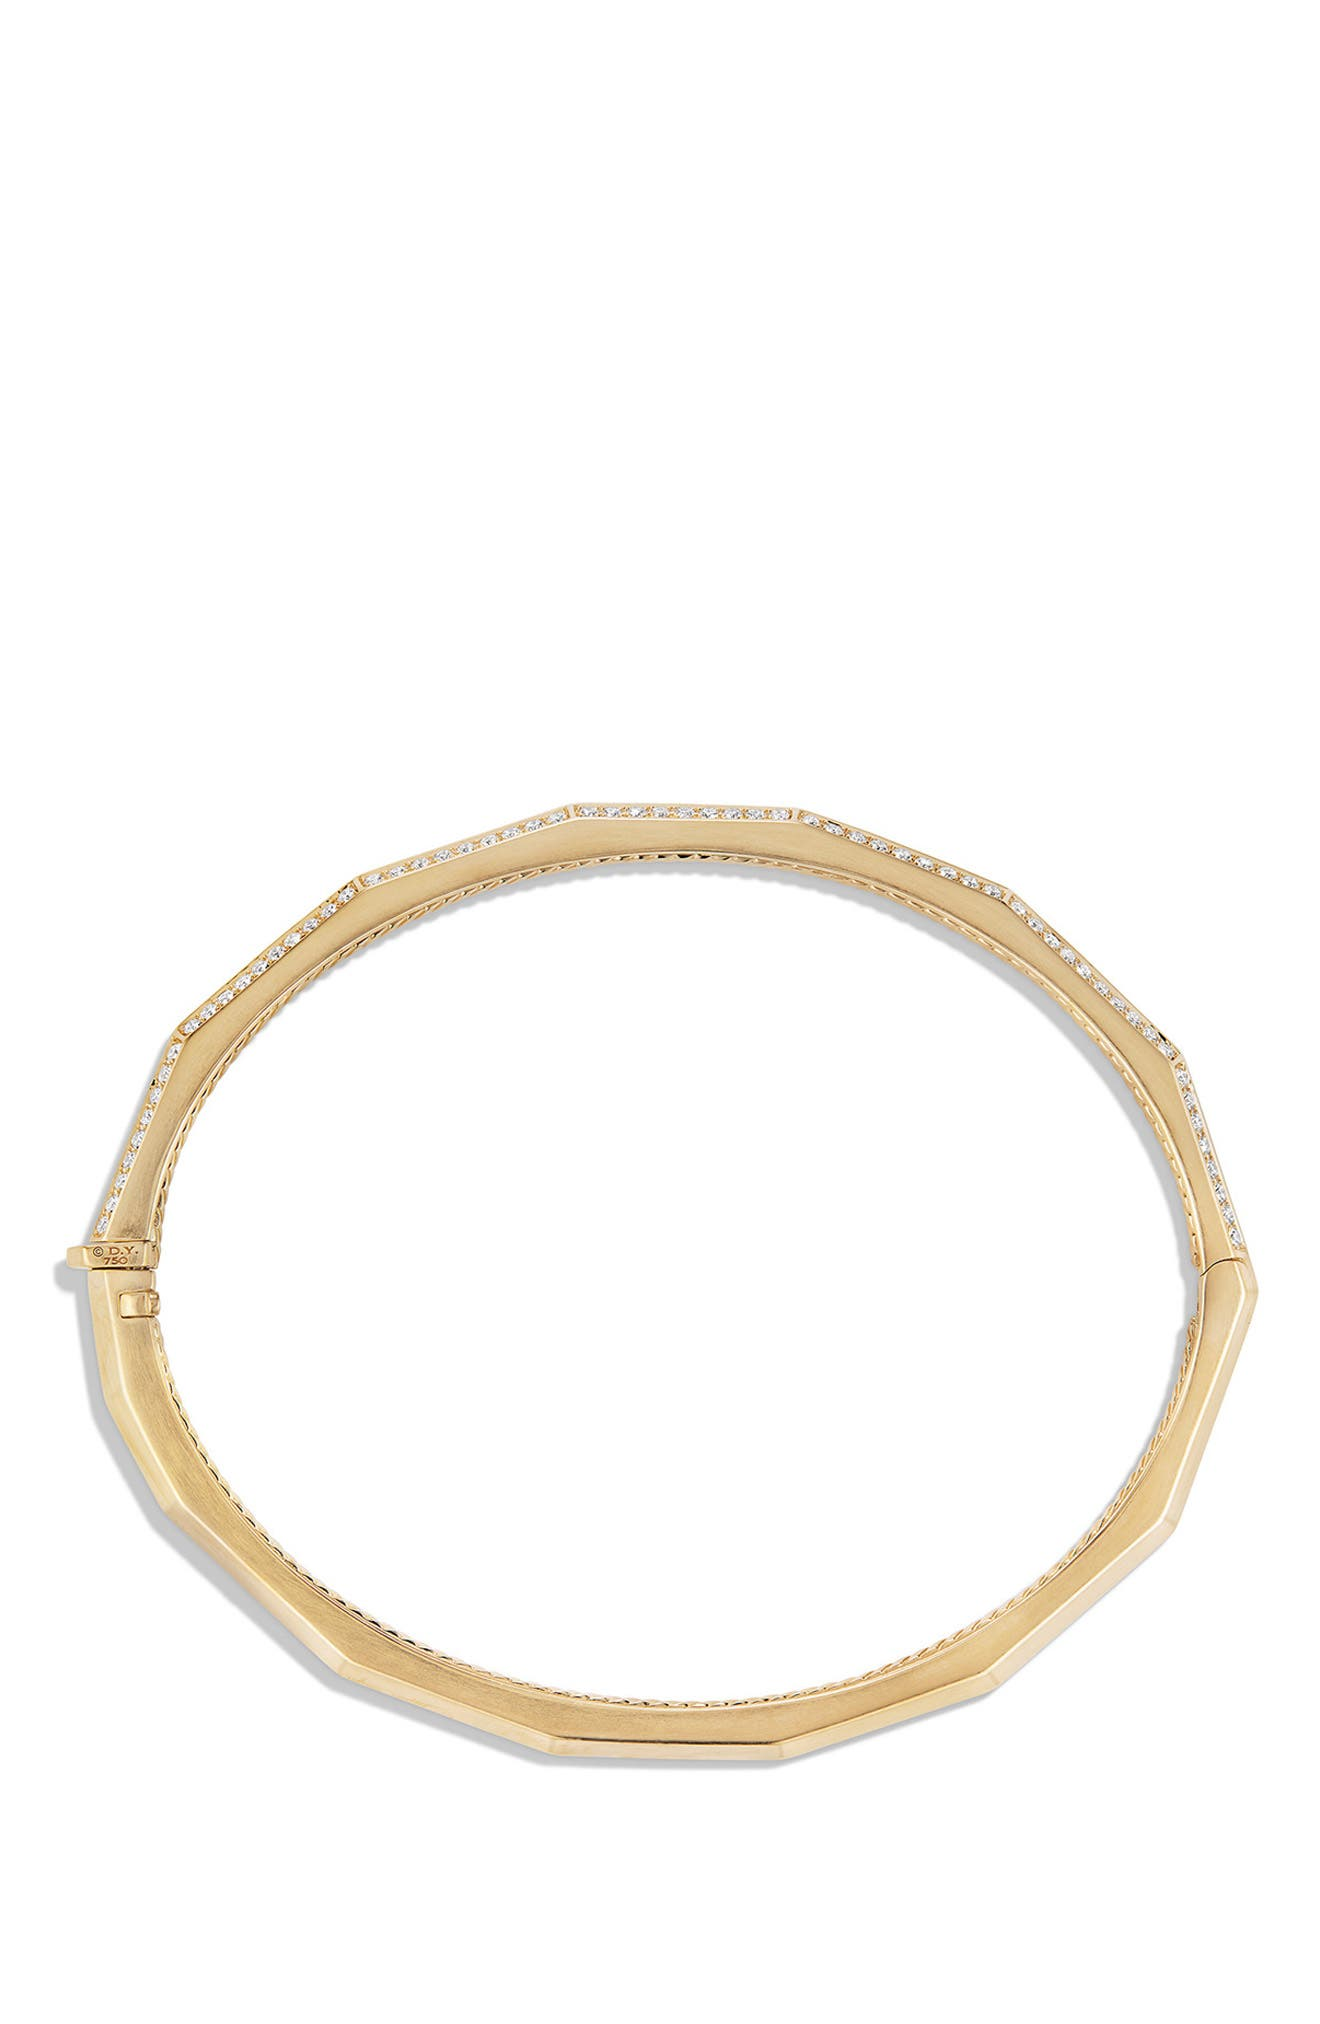 Stax Single-Row Faceted 18K Gold Bracelet with Diamonds, 3mm,                             Alternate thumbnail 2, color,                             YELLOW GOLD